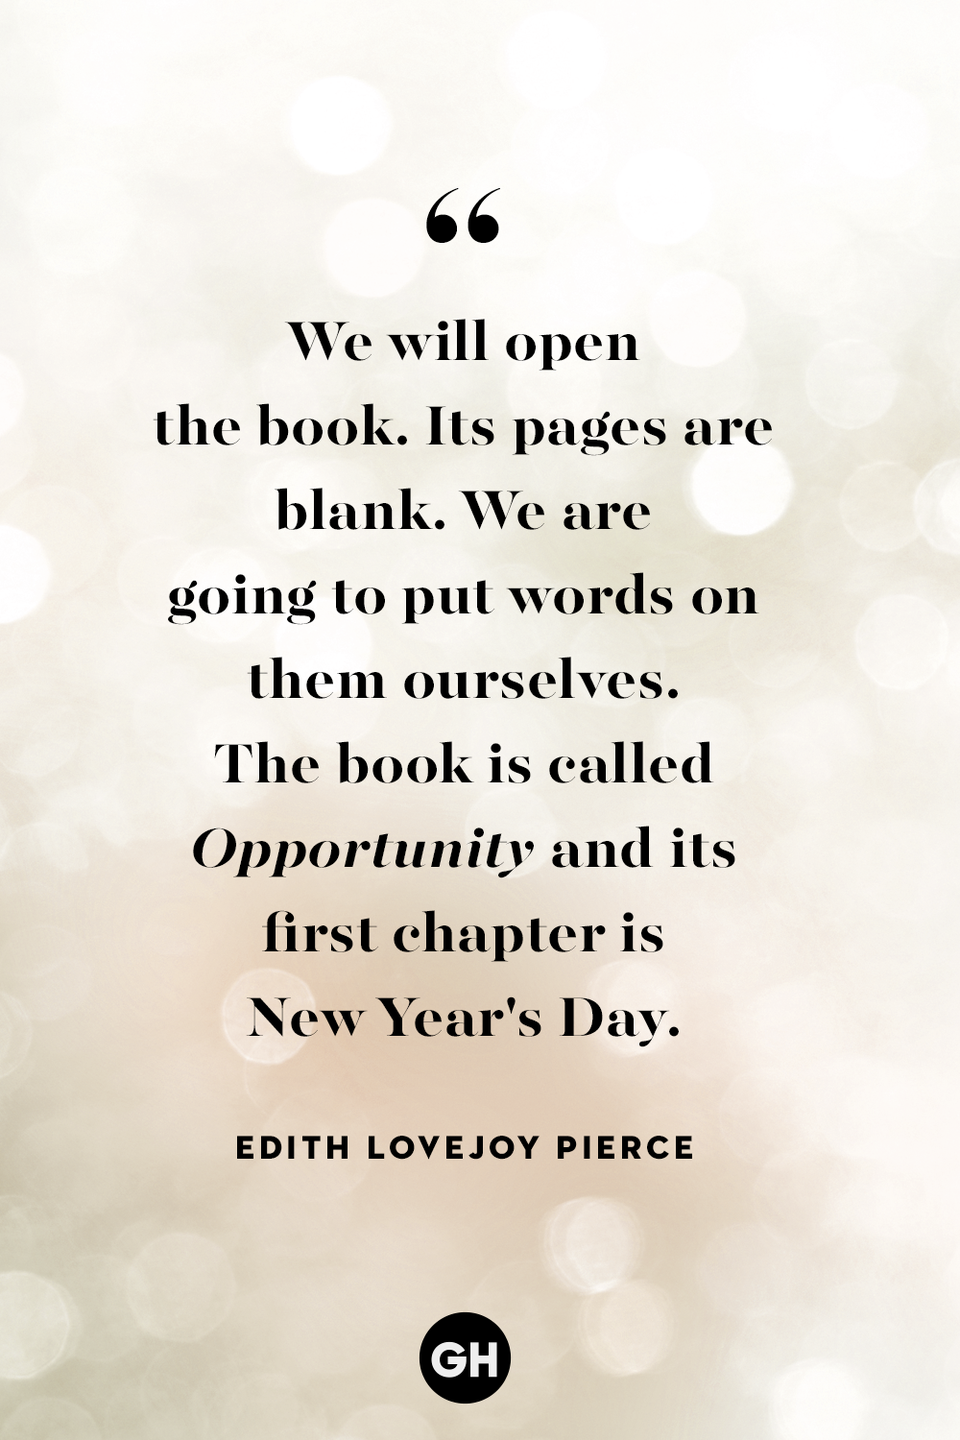 "<p>We will open the book. Its pages are blank. We are going to put words on them ourselves. The book is called <em>Opportunity</em> and its first chapter is New Year's Day.</p><p><strong>RELATED</strong>: <a href=""https://www.goodhousekeeping.com/holidays/a29962406/new-year-instagram-captions/"" rel=""nofollow noopener"" target=""_blank"" data-ylk=""slk:48 Cute New Year's Instagram Captions For All Your Confetti-Filled Pics"" class=""link rapid-noclick-resp"">48 Cute New Year's Instagram Captions For All Your Confetti-Filled Pics</a></p>"